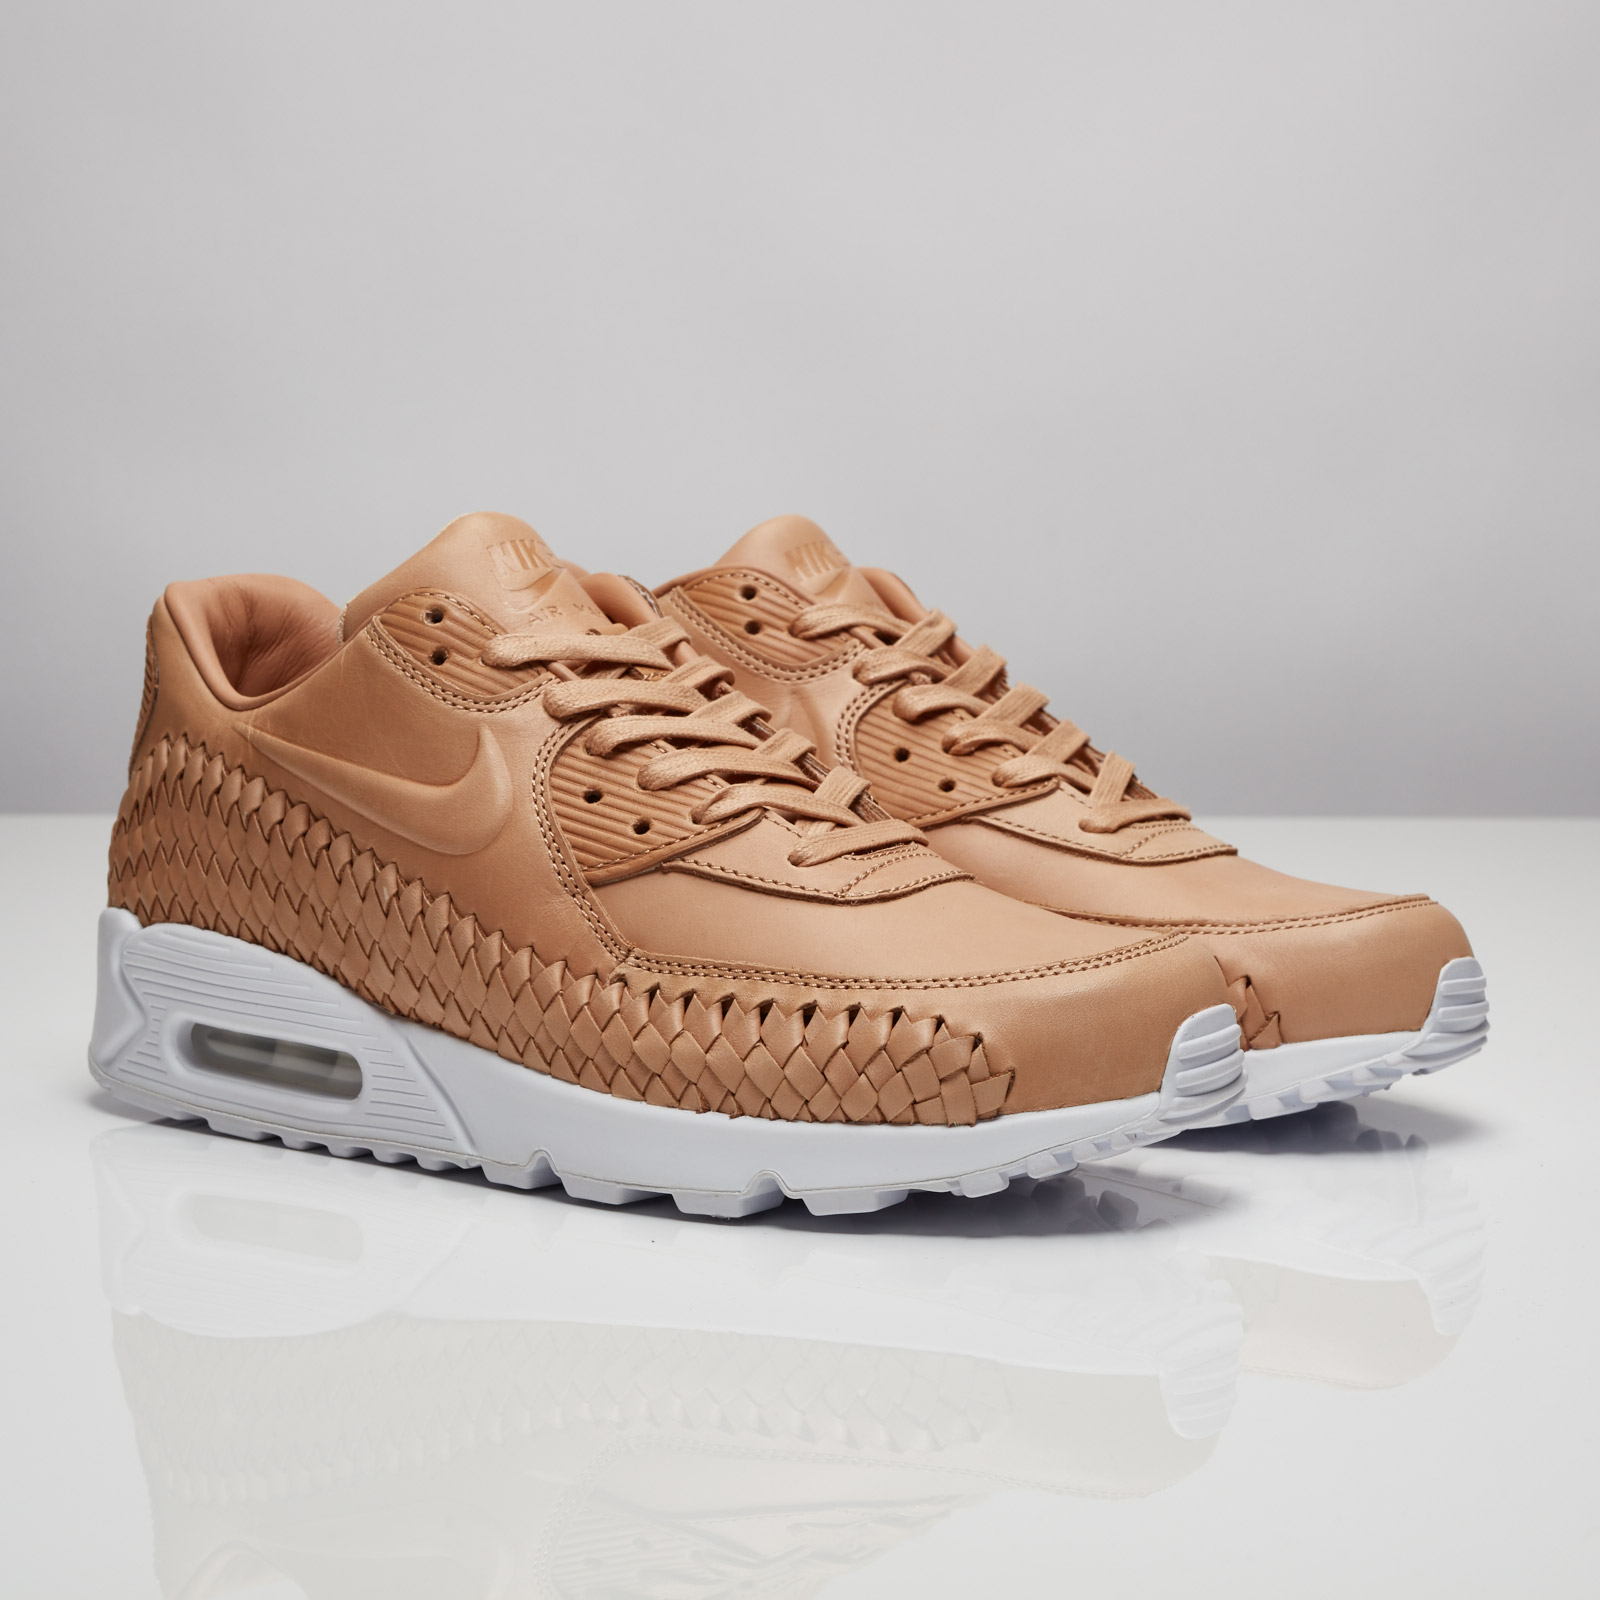 reputable site 37742 2fafe Nike Air Max 90 Woven